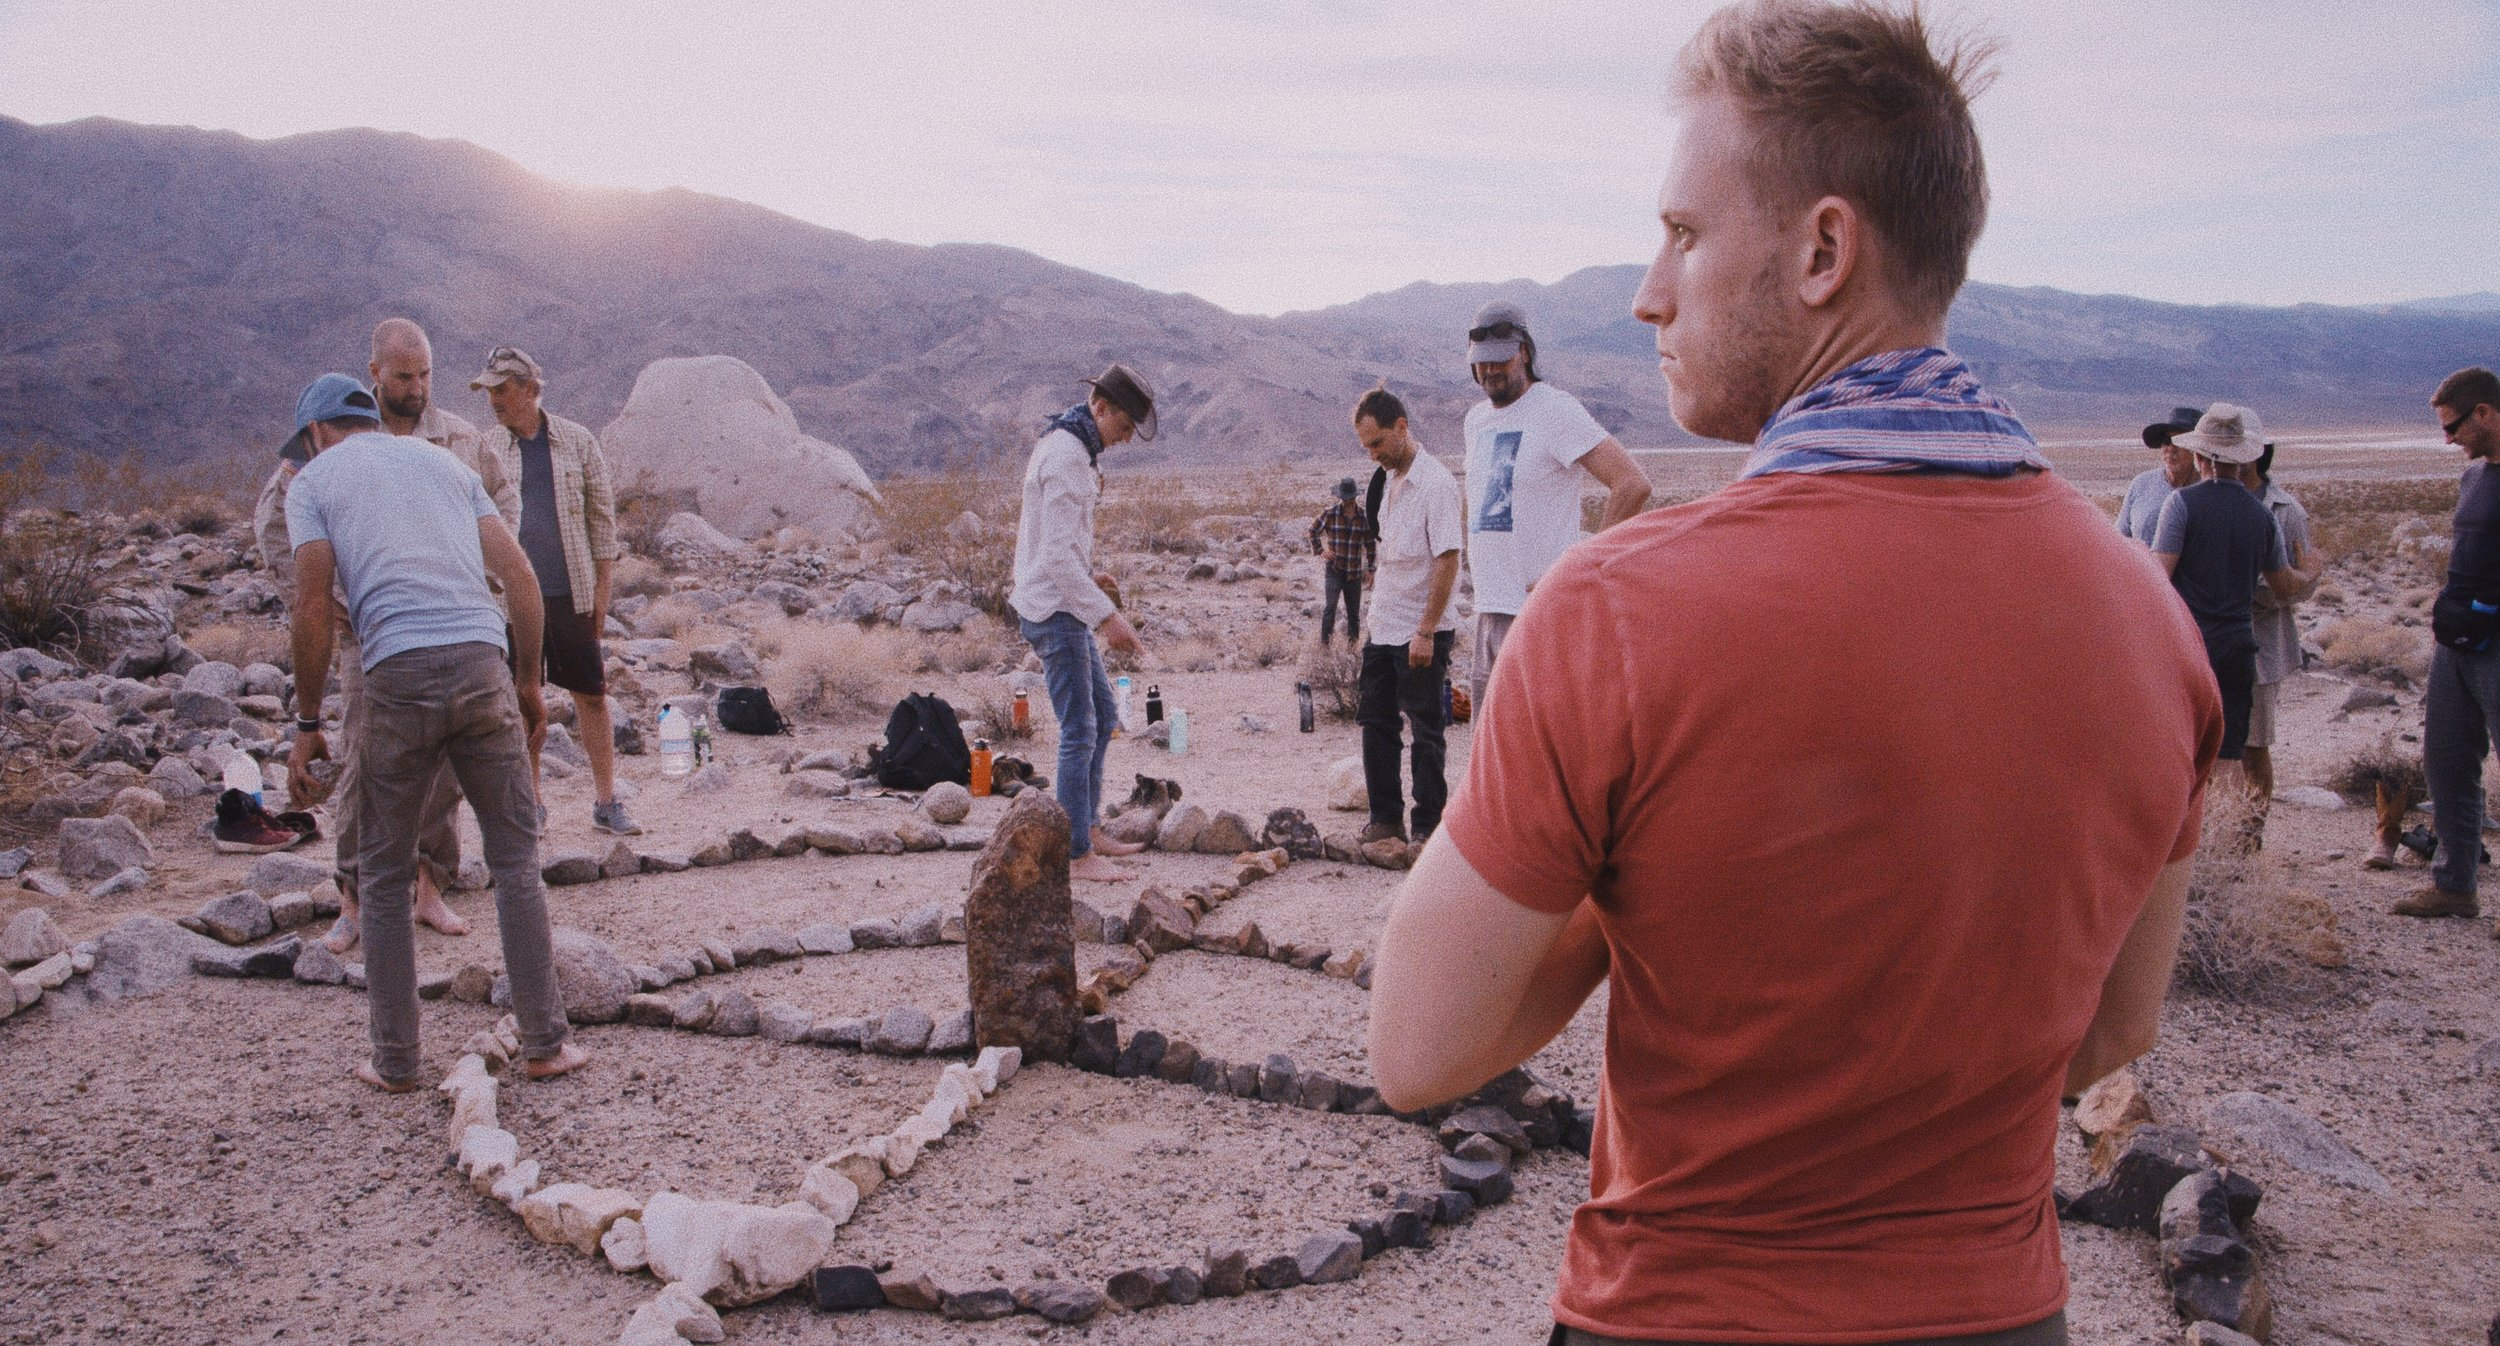 DEATH VALLEY - Thursday, October 31 - Monday, November 4PRIVATE INTENSIVE